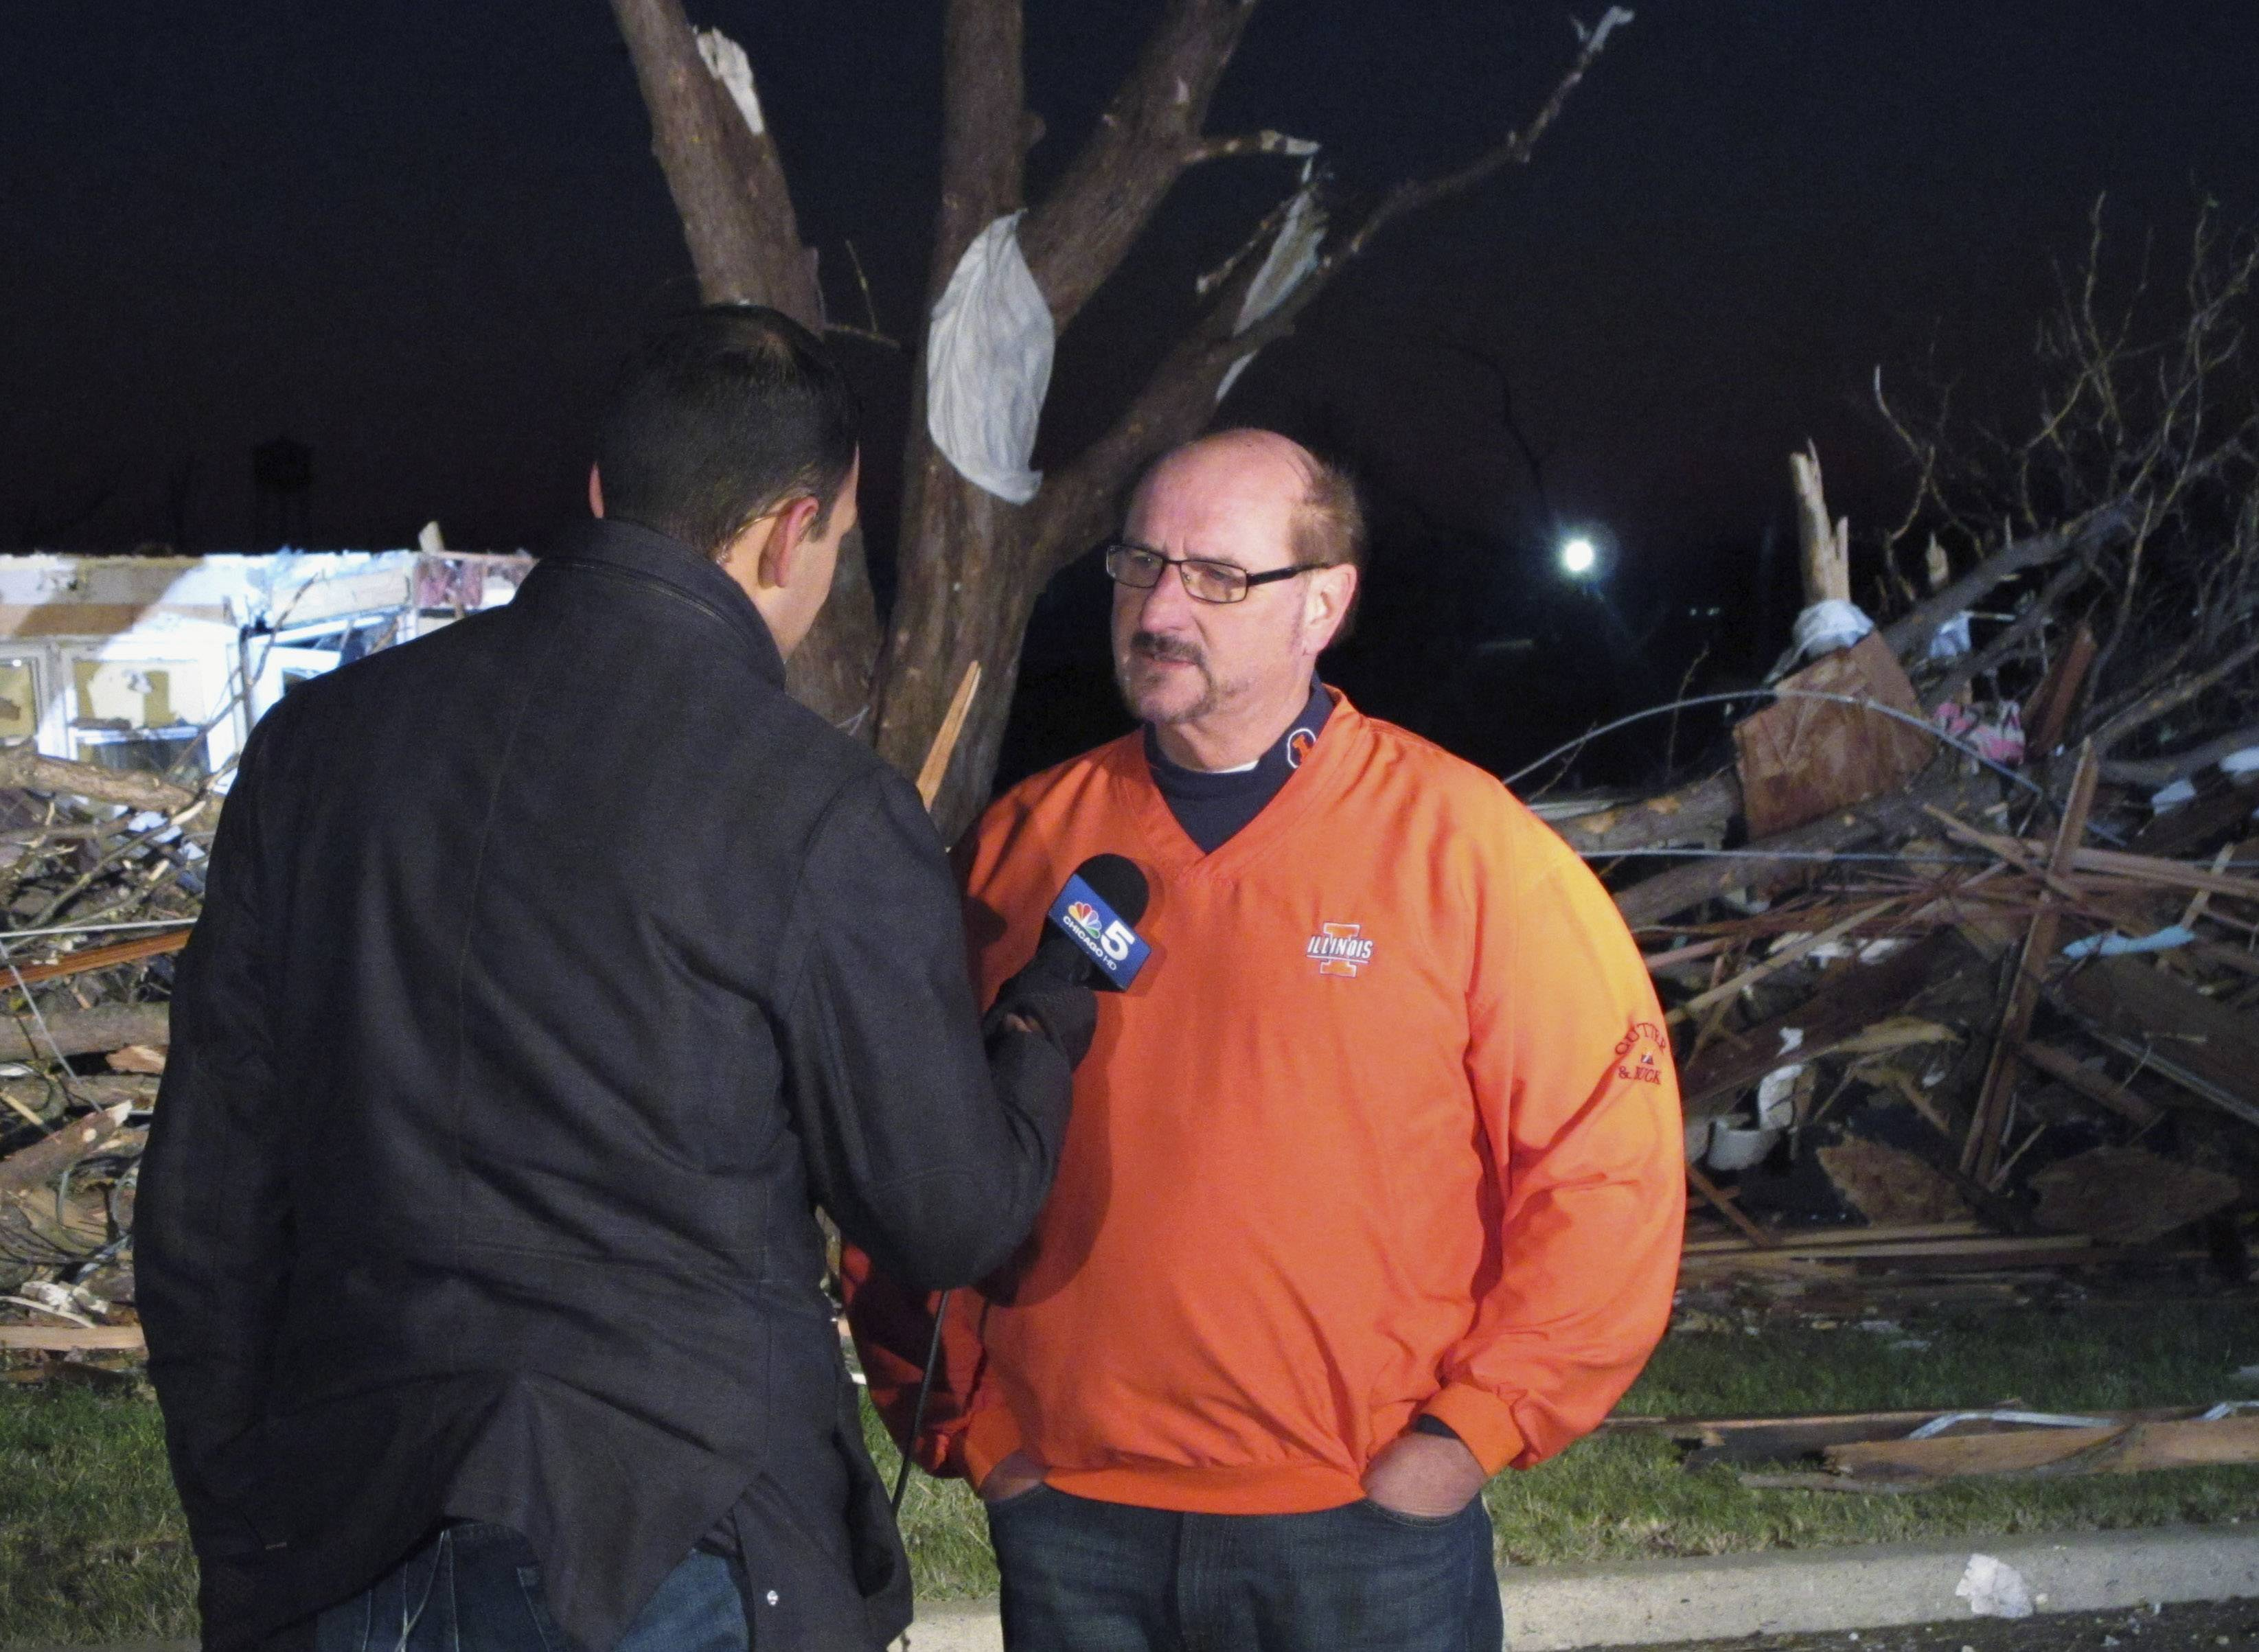 In this Nov. 18, 2013, photo, Gary Manier, right, the mayor of Washington, Ill., talks with a reporter in front of a row of homes leveled by a tornado the day before. Manier said the city has issued more than 600 building permits for the more than 1,000 badly damaged or destroyed homes. But construction was slowed by the harsh winter and for many is just beginning.